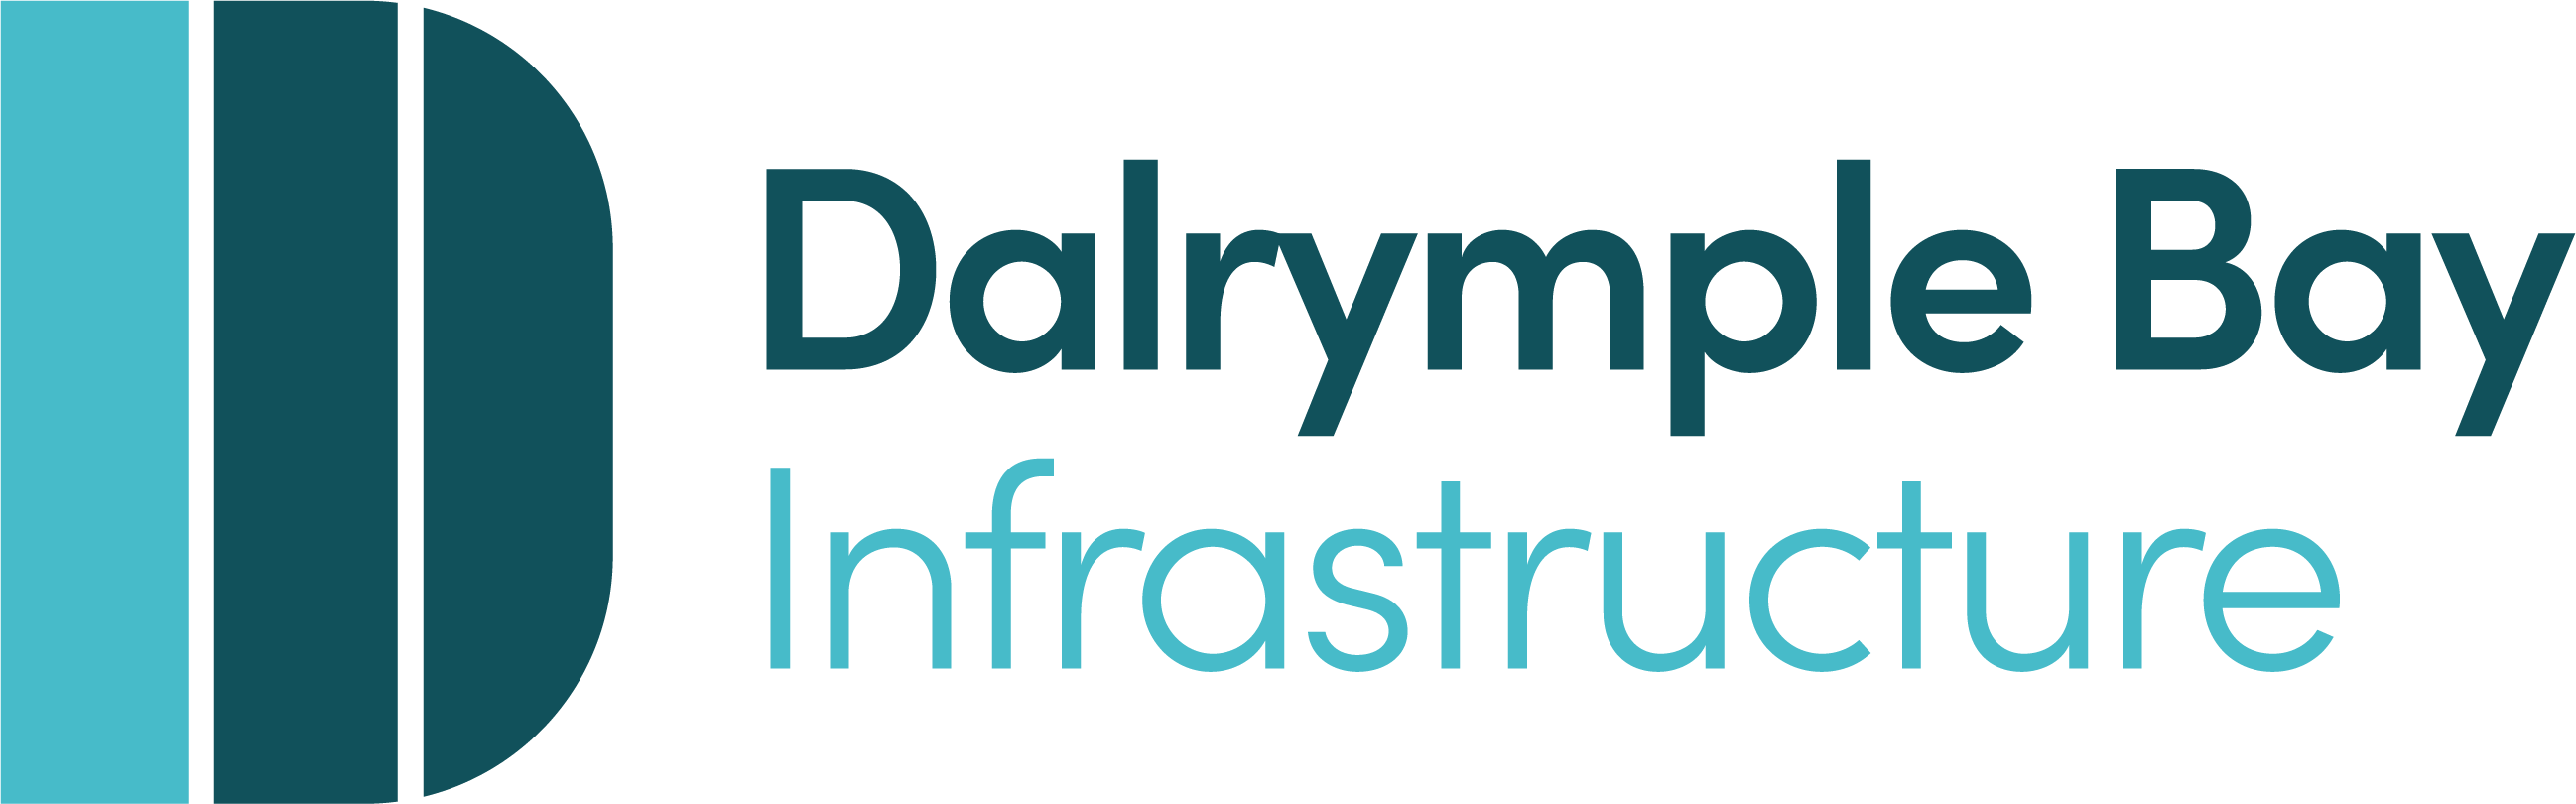 Dalrymple Bay Infrastructure